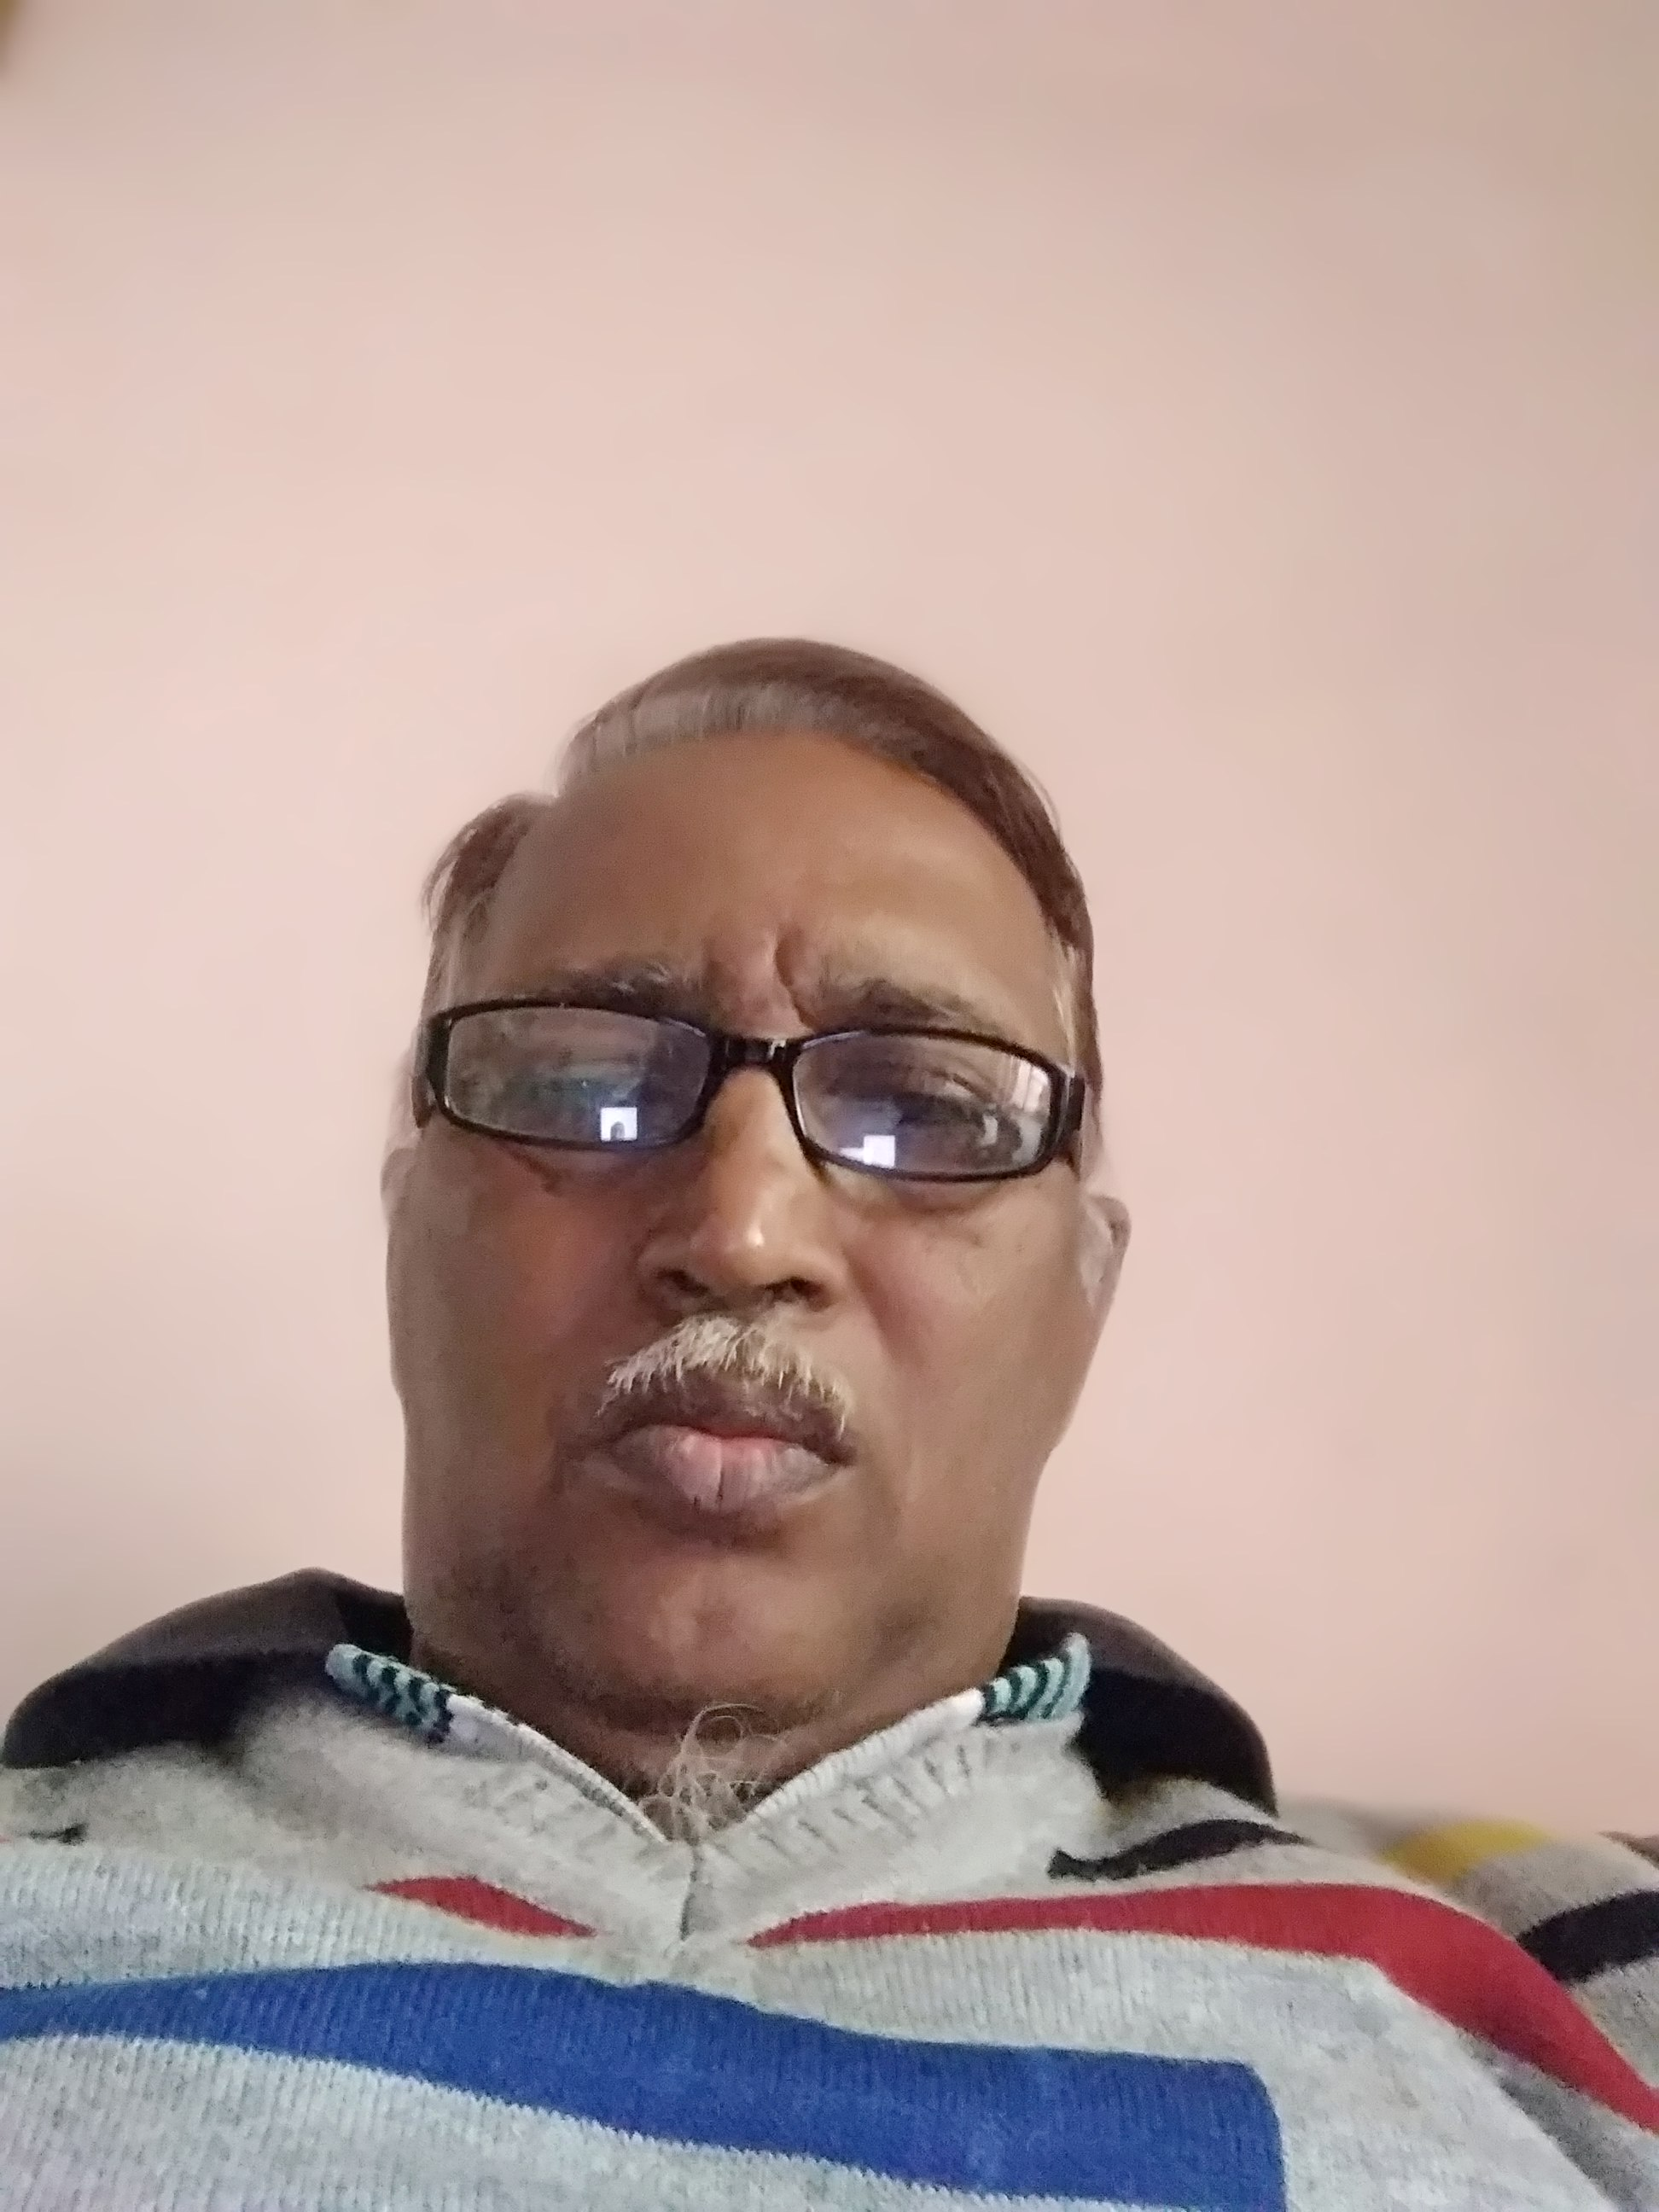 Profile picture for user Uday Mukadam_1